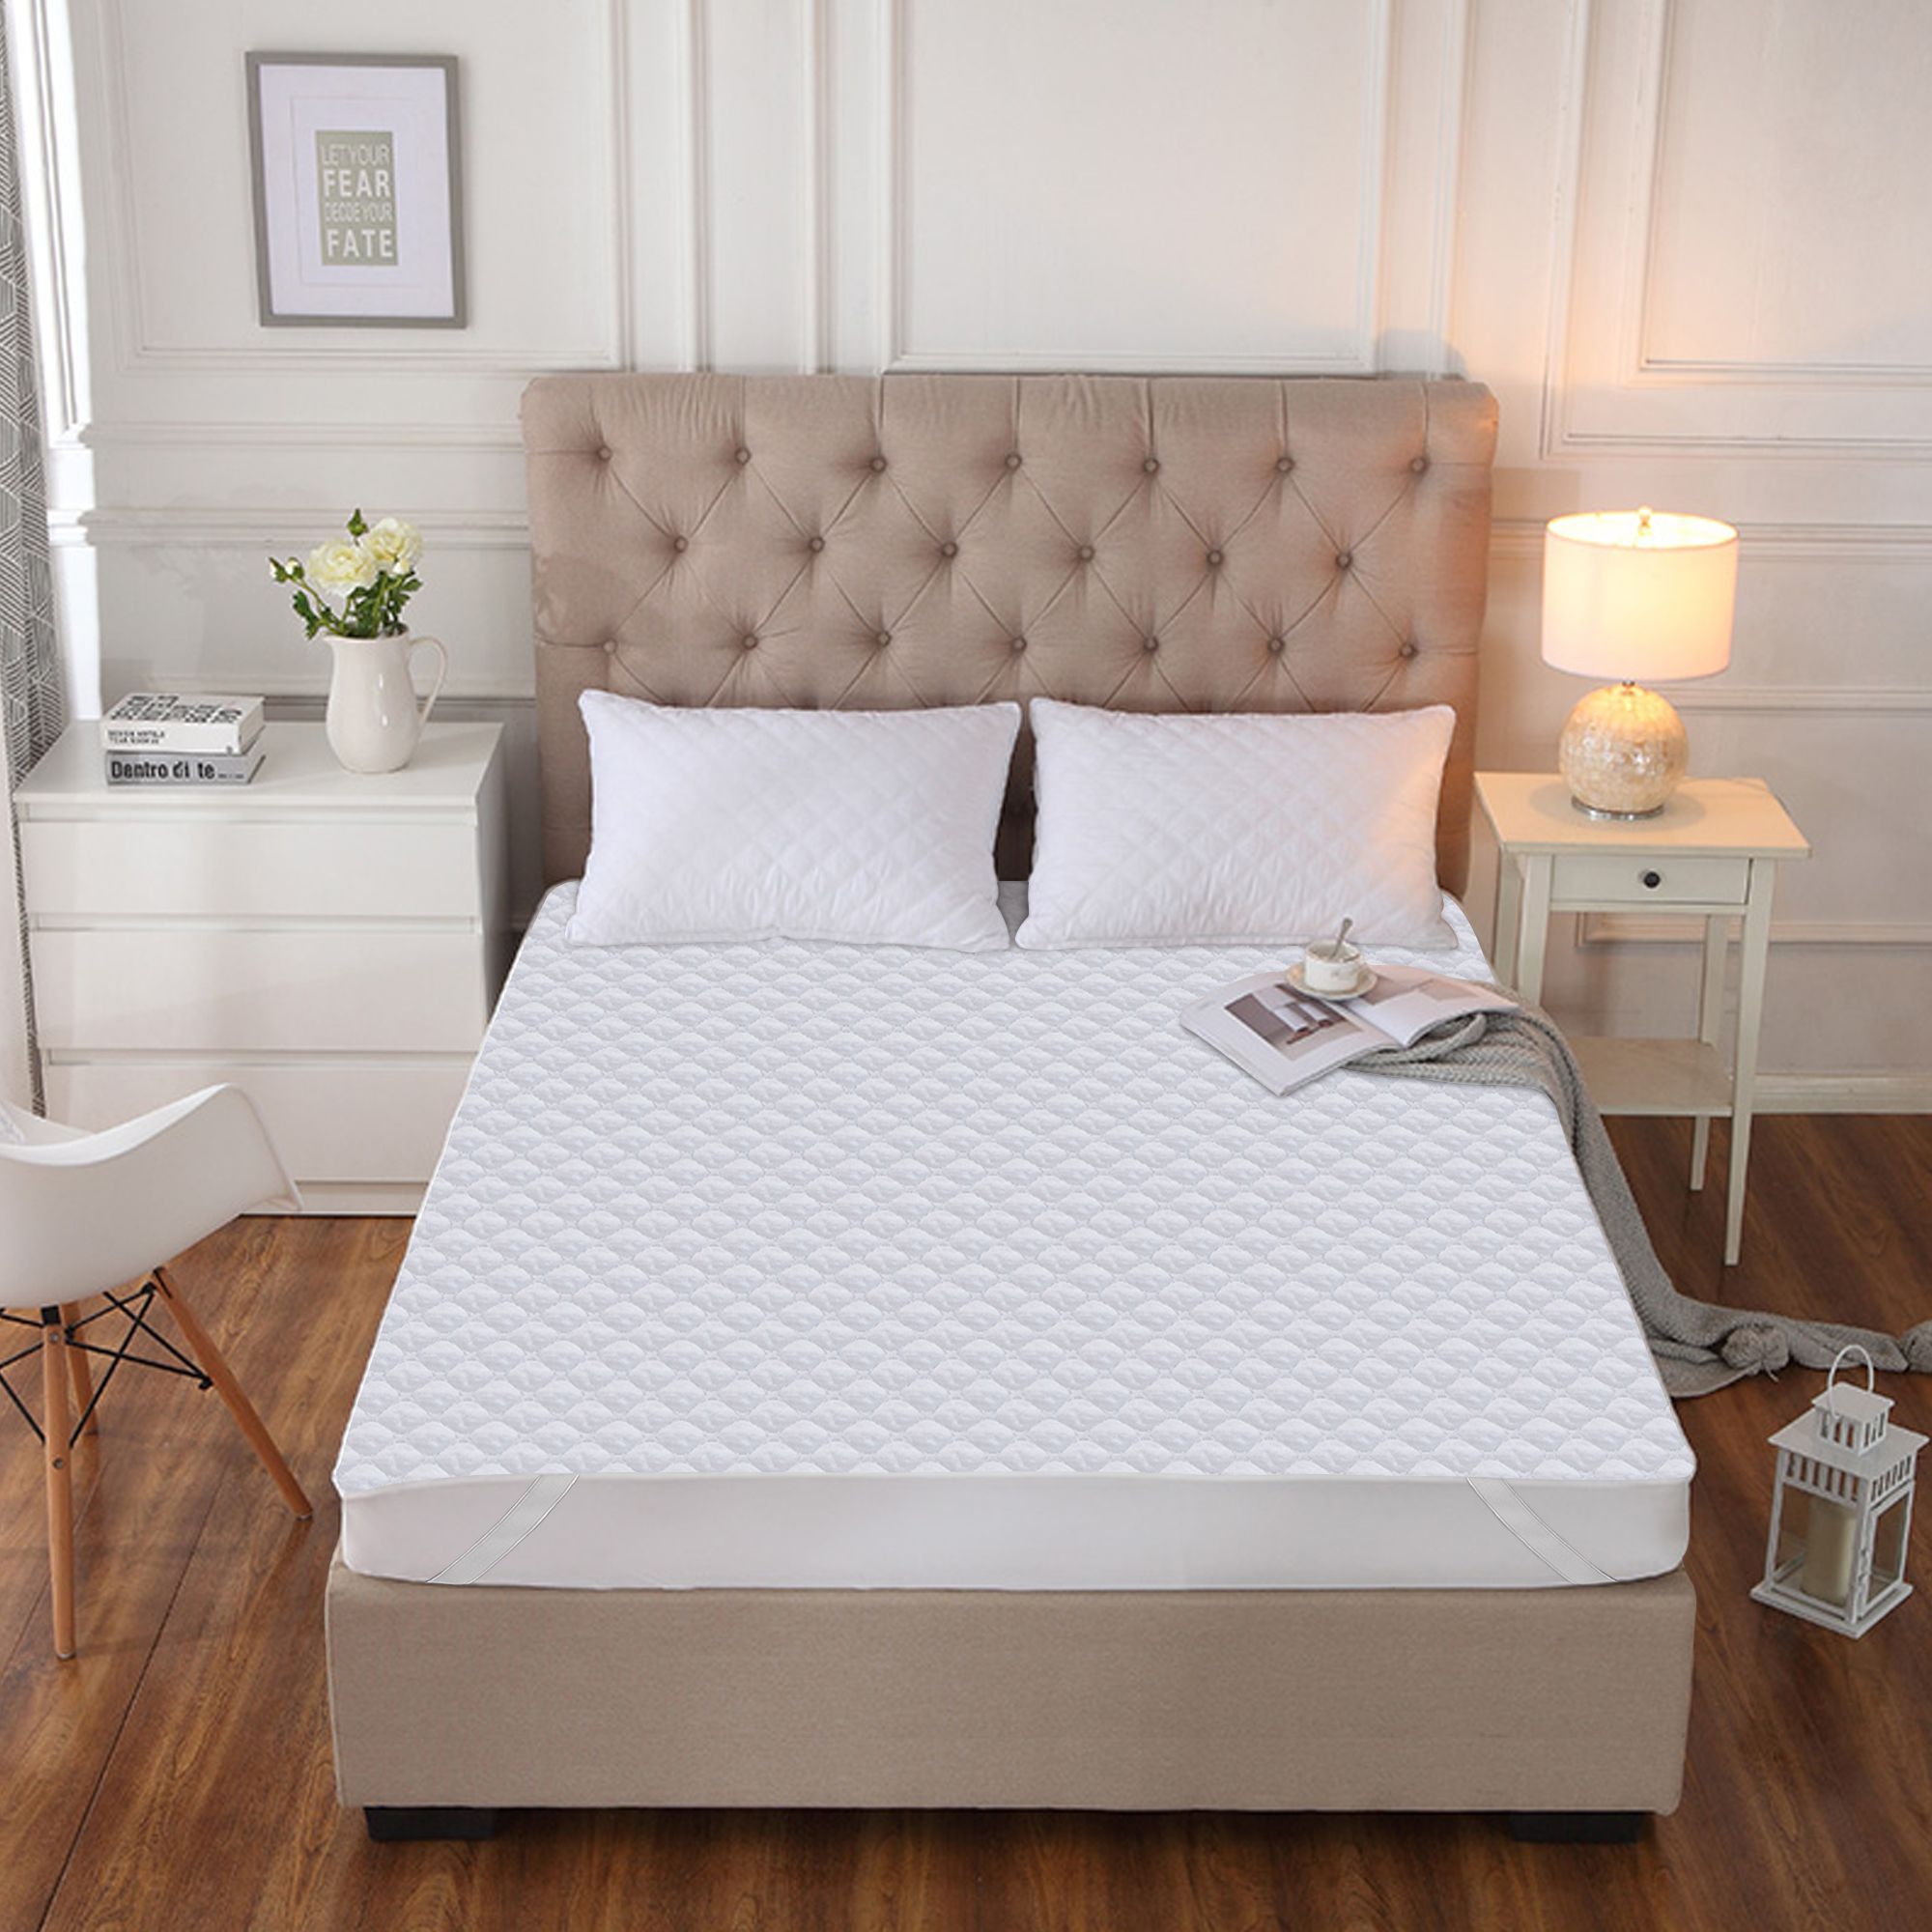 Story@Home Qulited Water Resistant Microfiber White Cotton Mattress Protector